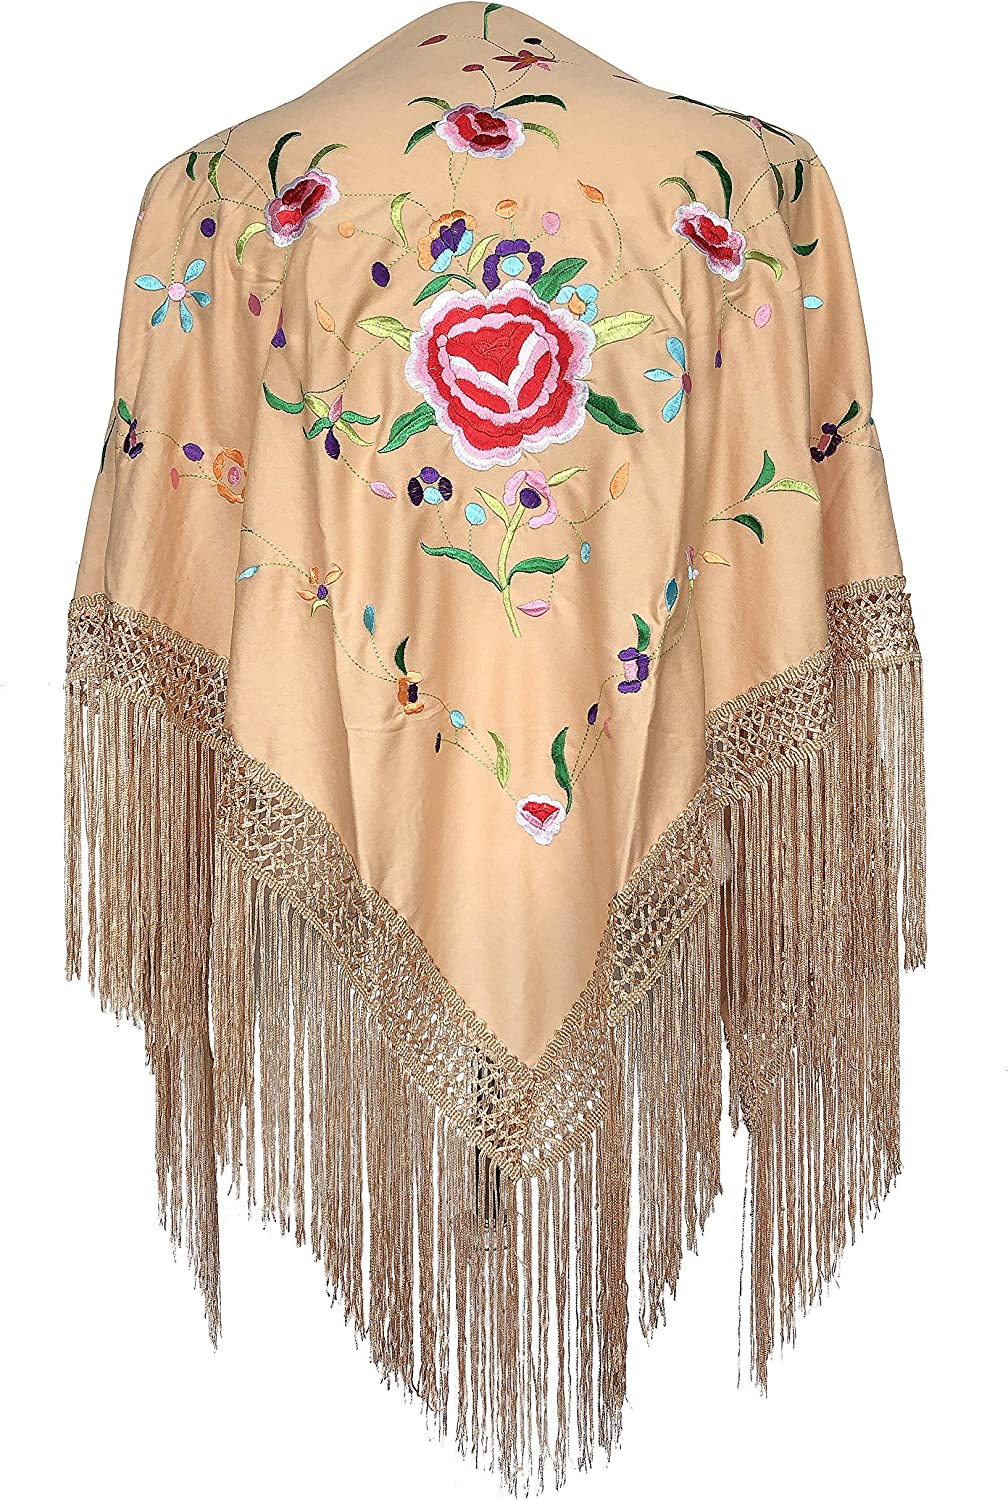 La Senorita Spanish Flamenco Dance Shawl beige with colord flowers